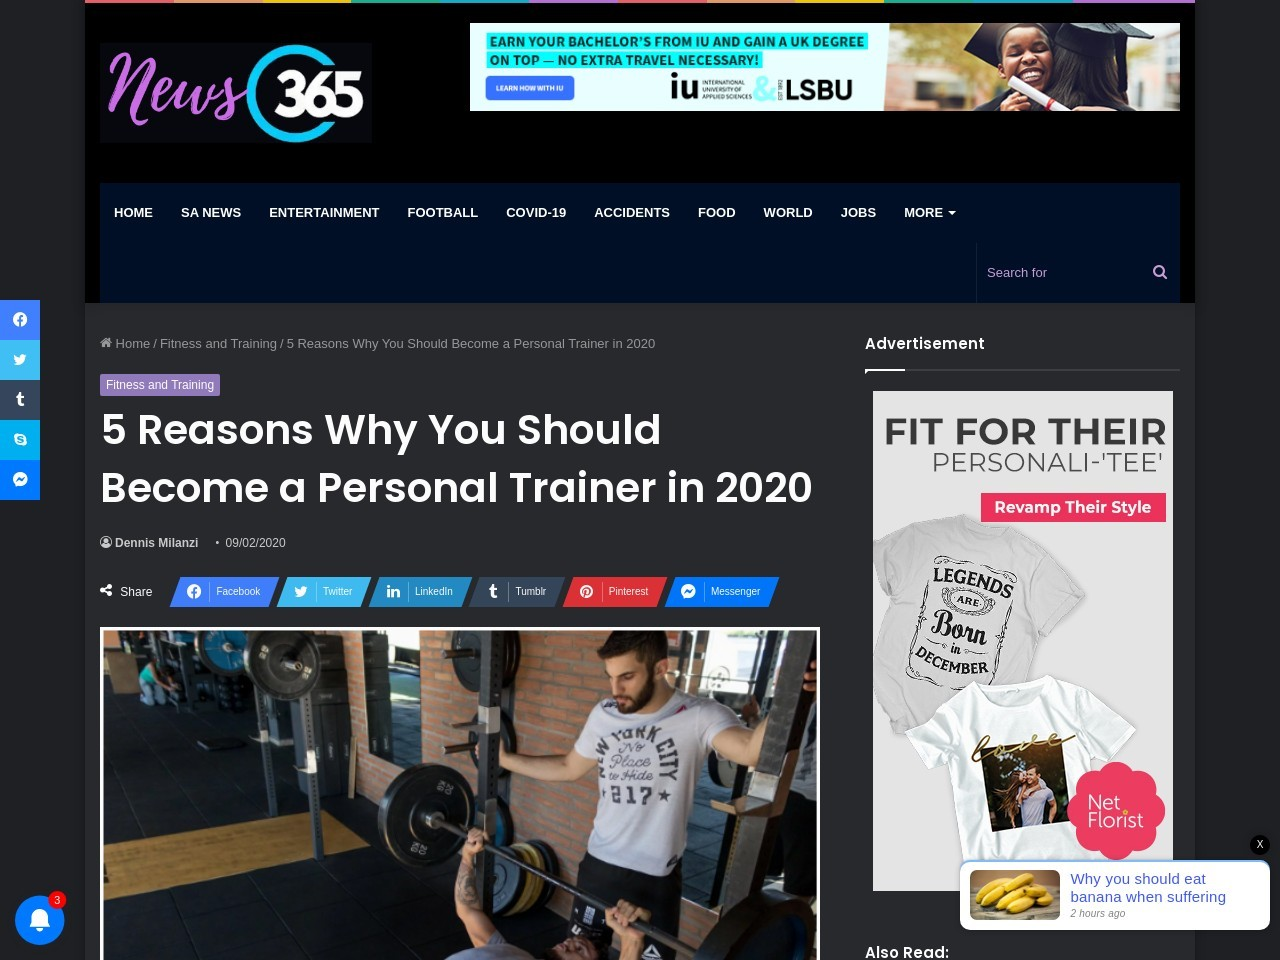 5 Reasons Why You Should Become a Personal Trainer in 2020News365.co.za